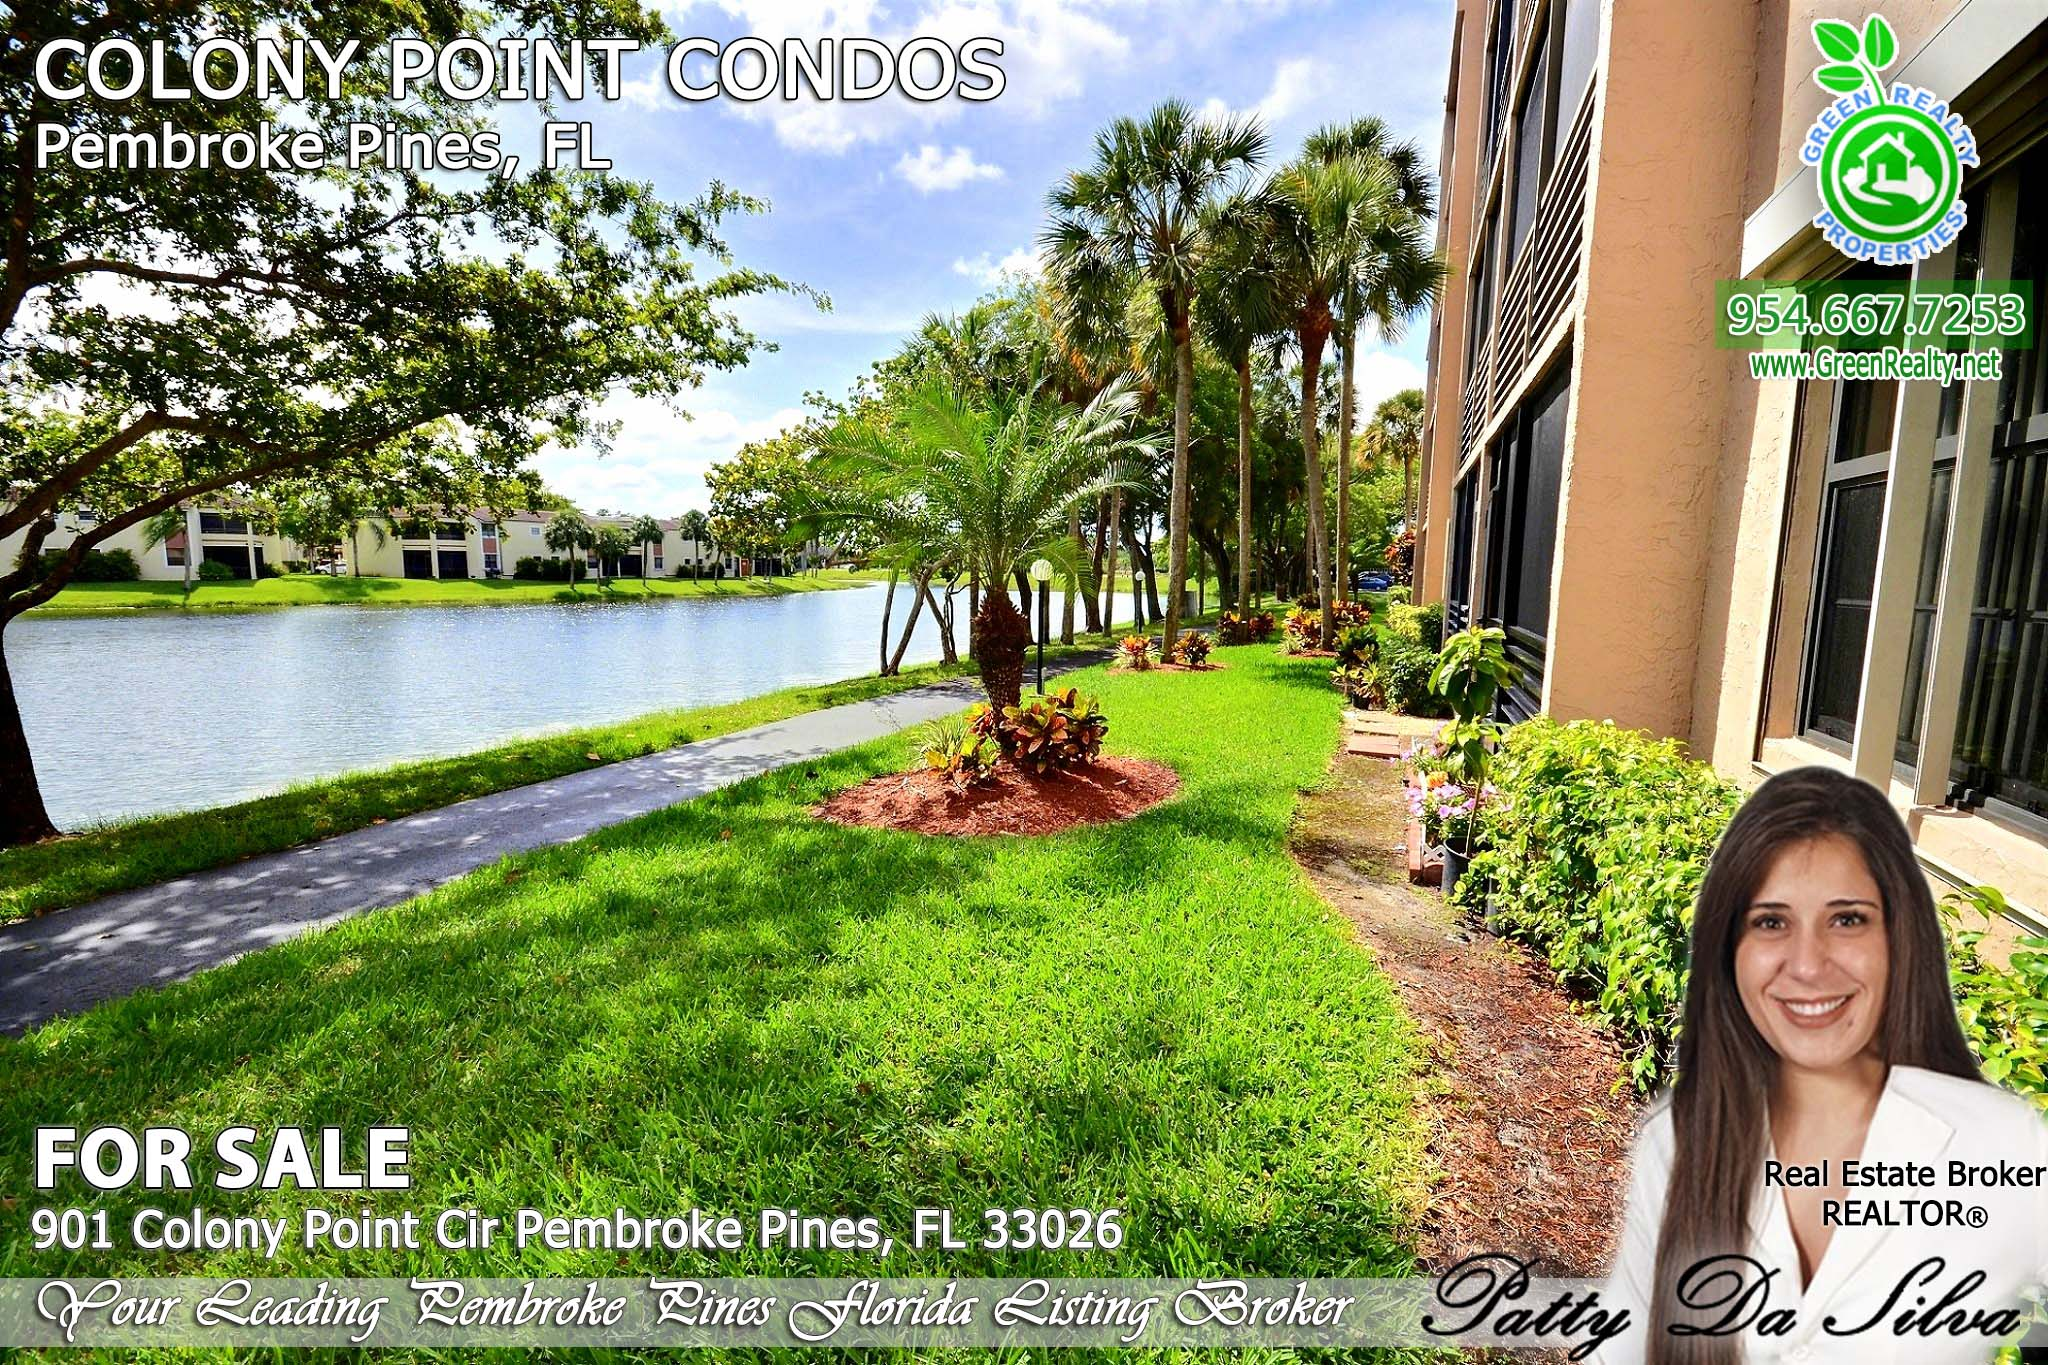 901 Colony Point Cir, Unit 112 - Pembroke Pines Homes For Sale (14)